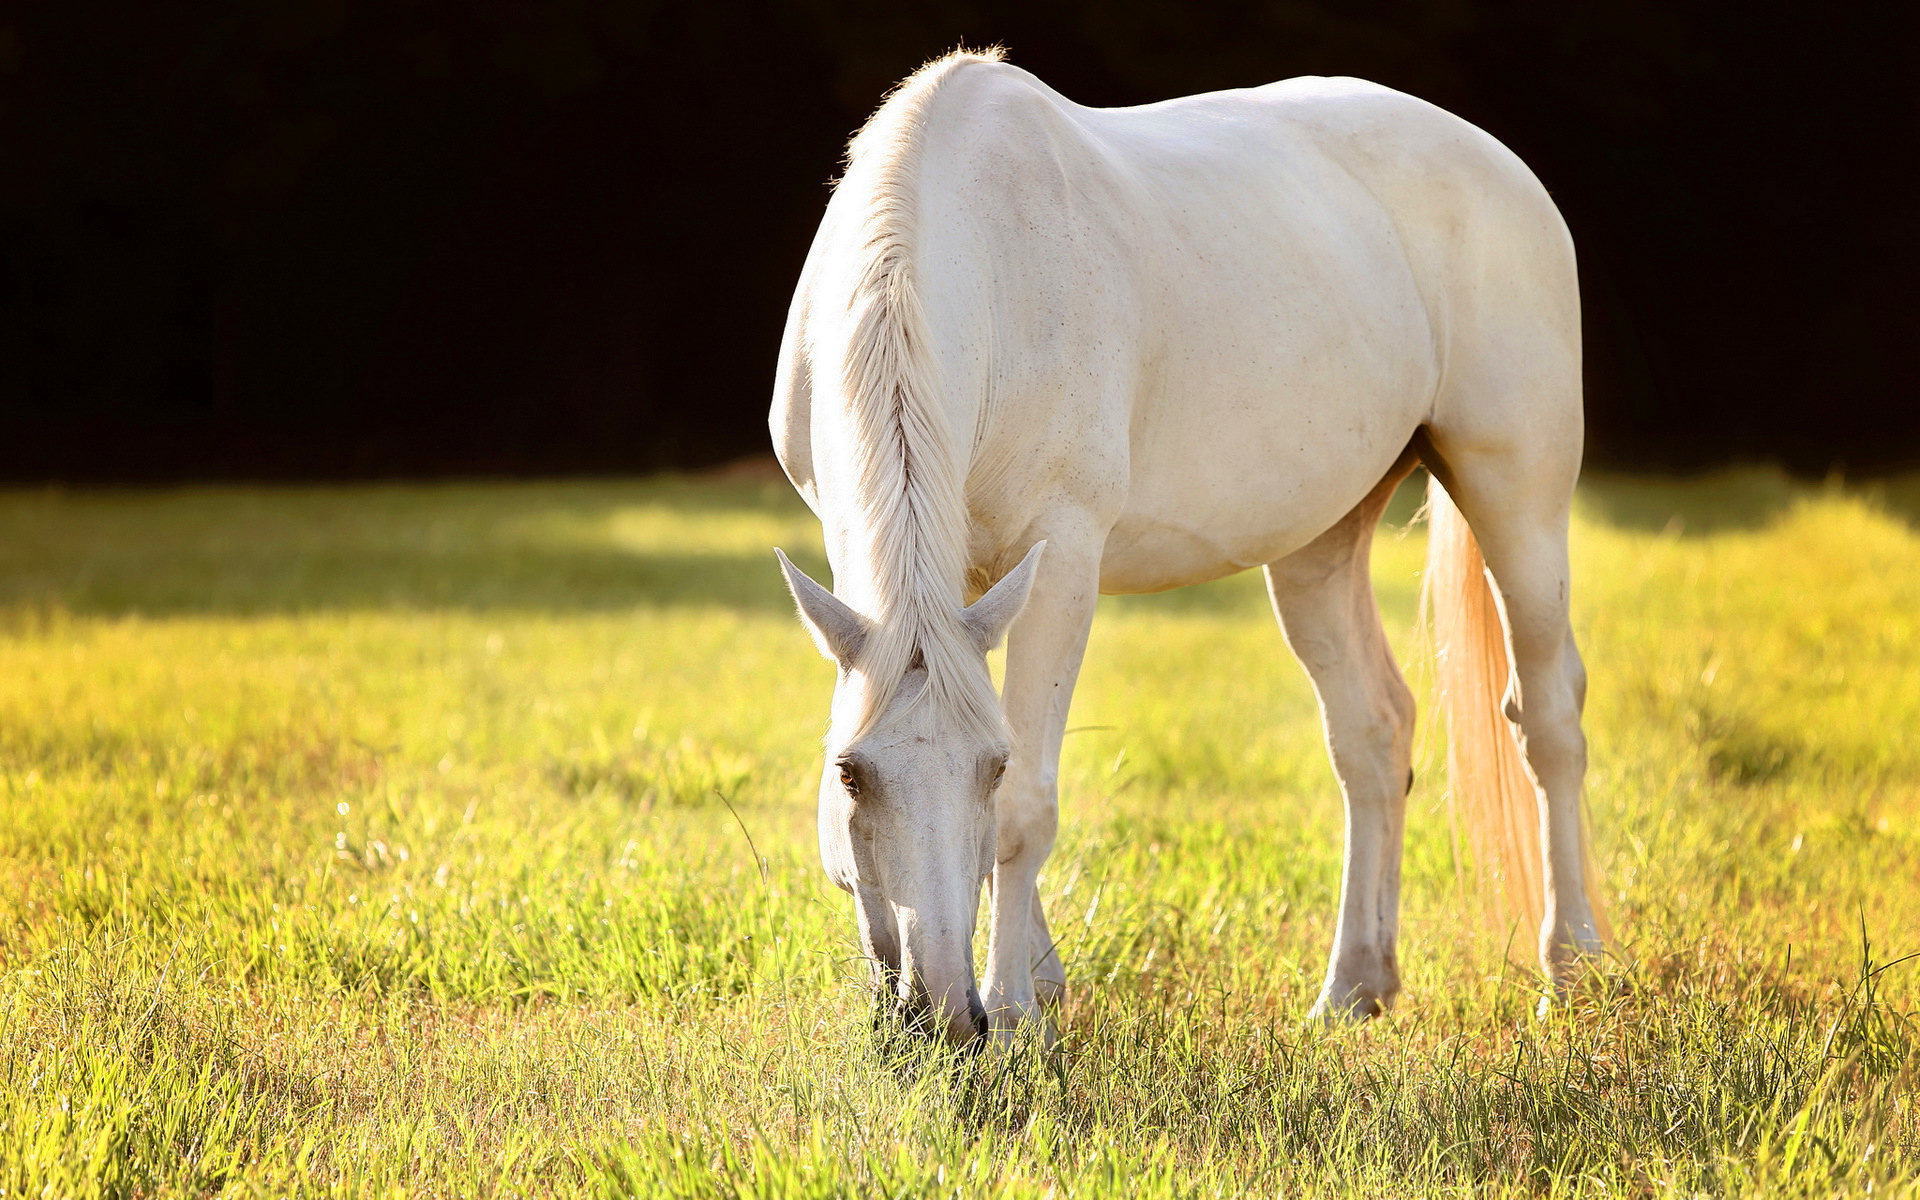 White Horse Hd Hd Desktop Wallpapers 4k Hd